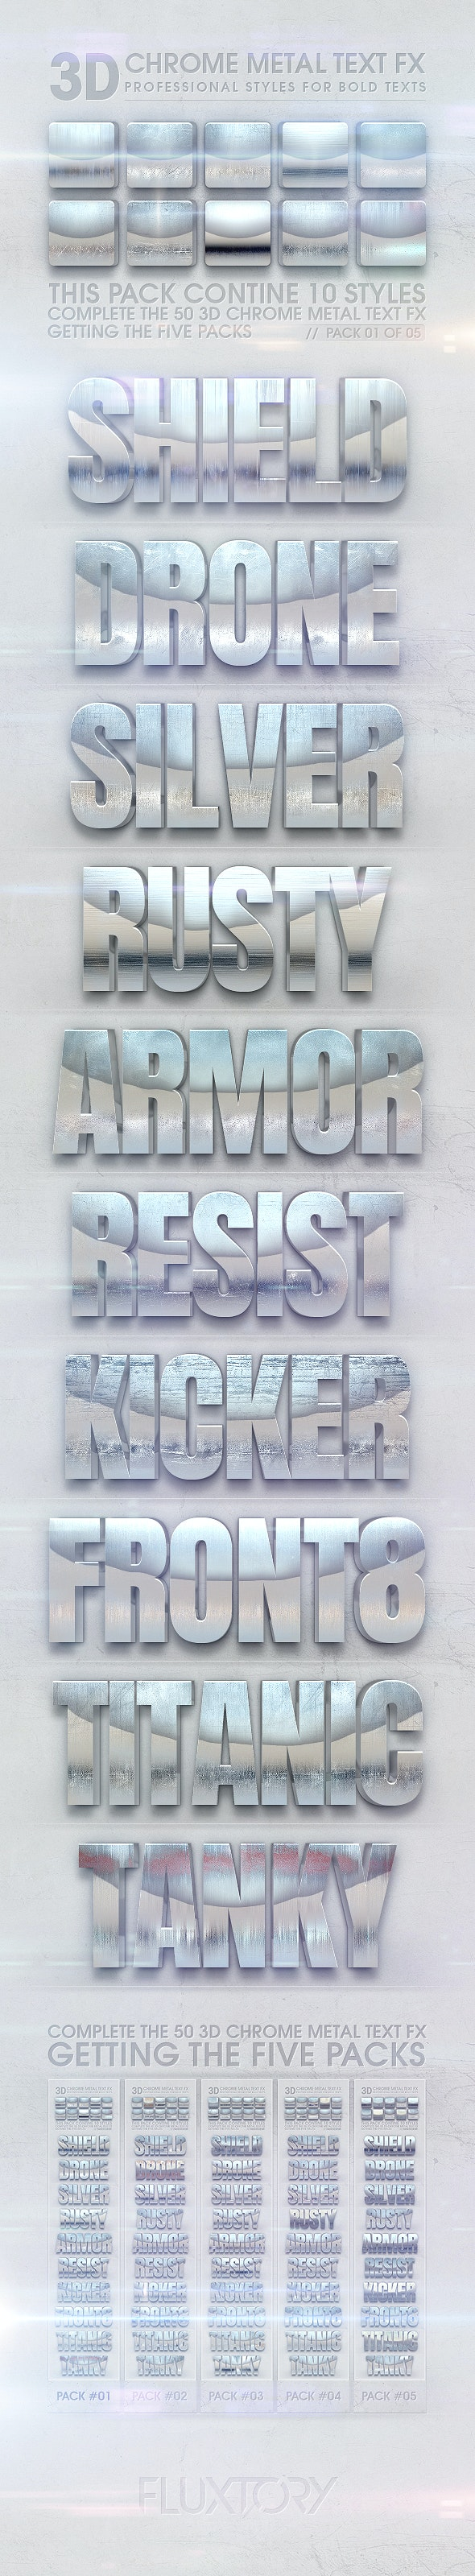 3D Chrome Metal Text FX 01 of 05 - Text Effects Styles